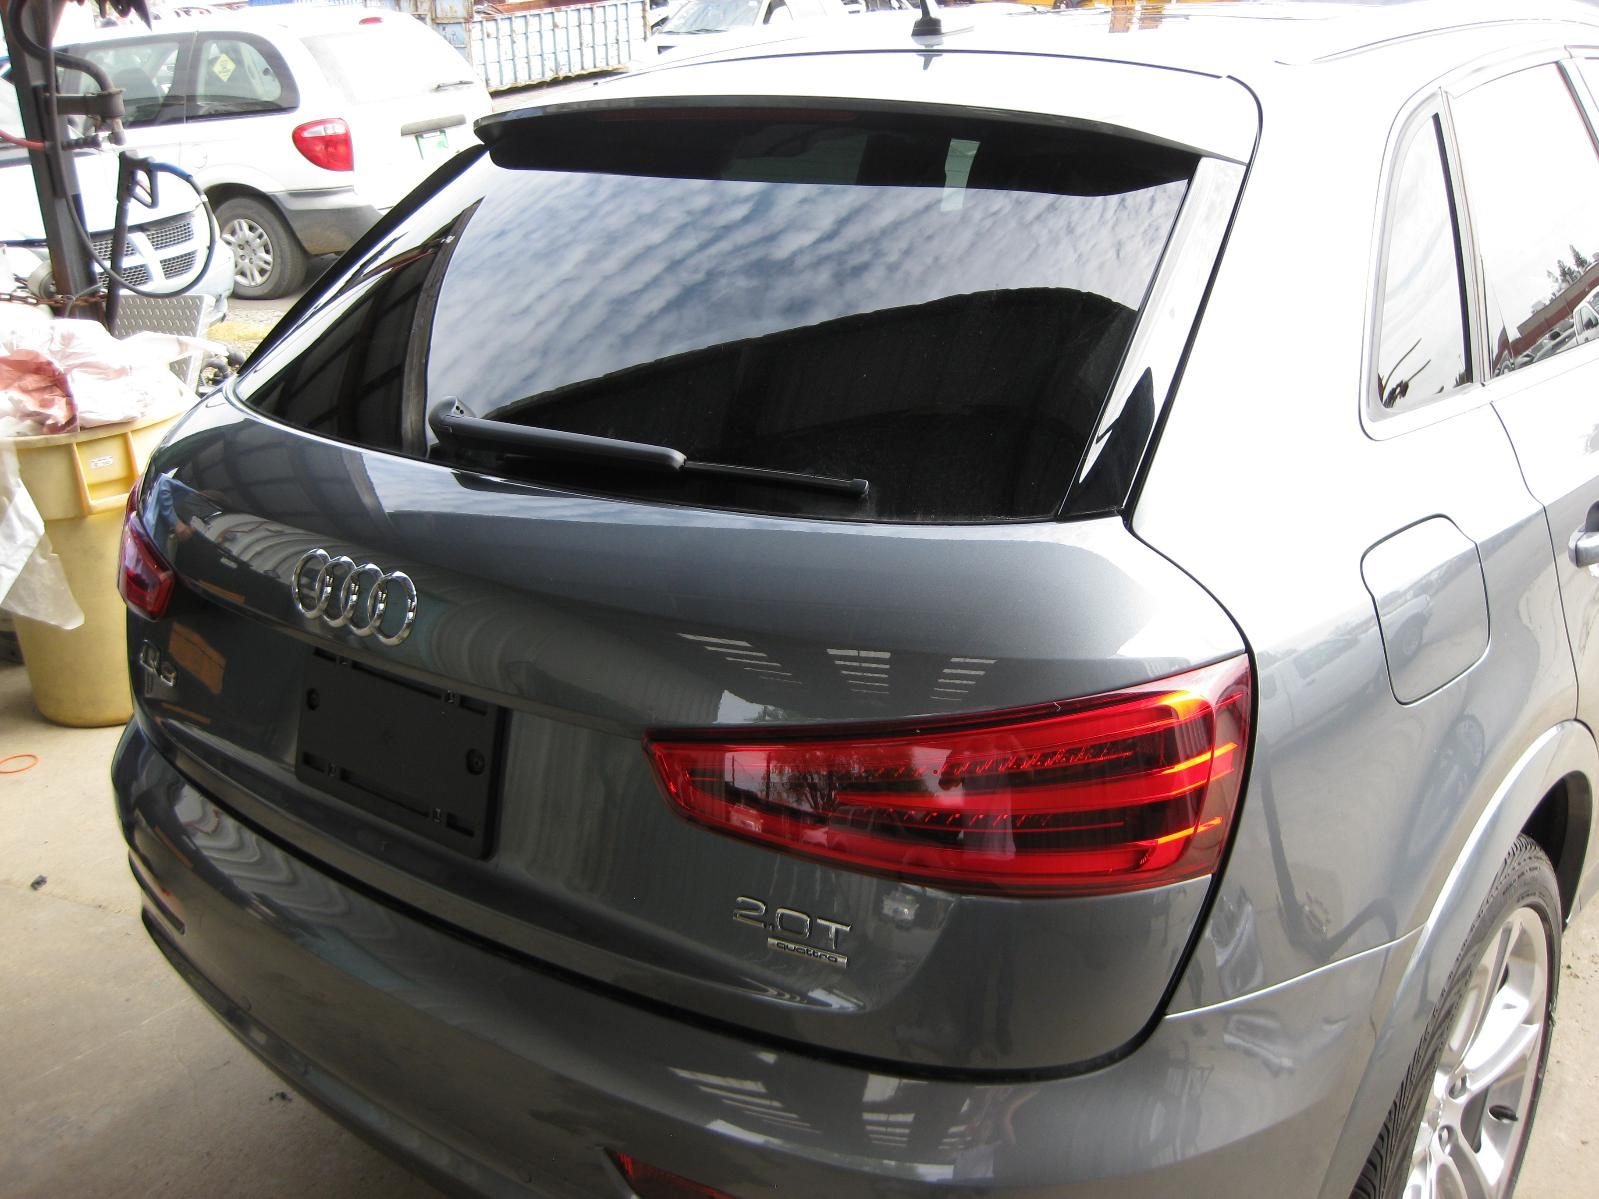 Used Trunk Lid For Sale For A 2015 Audi Q3